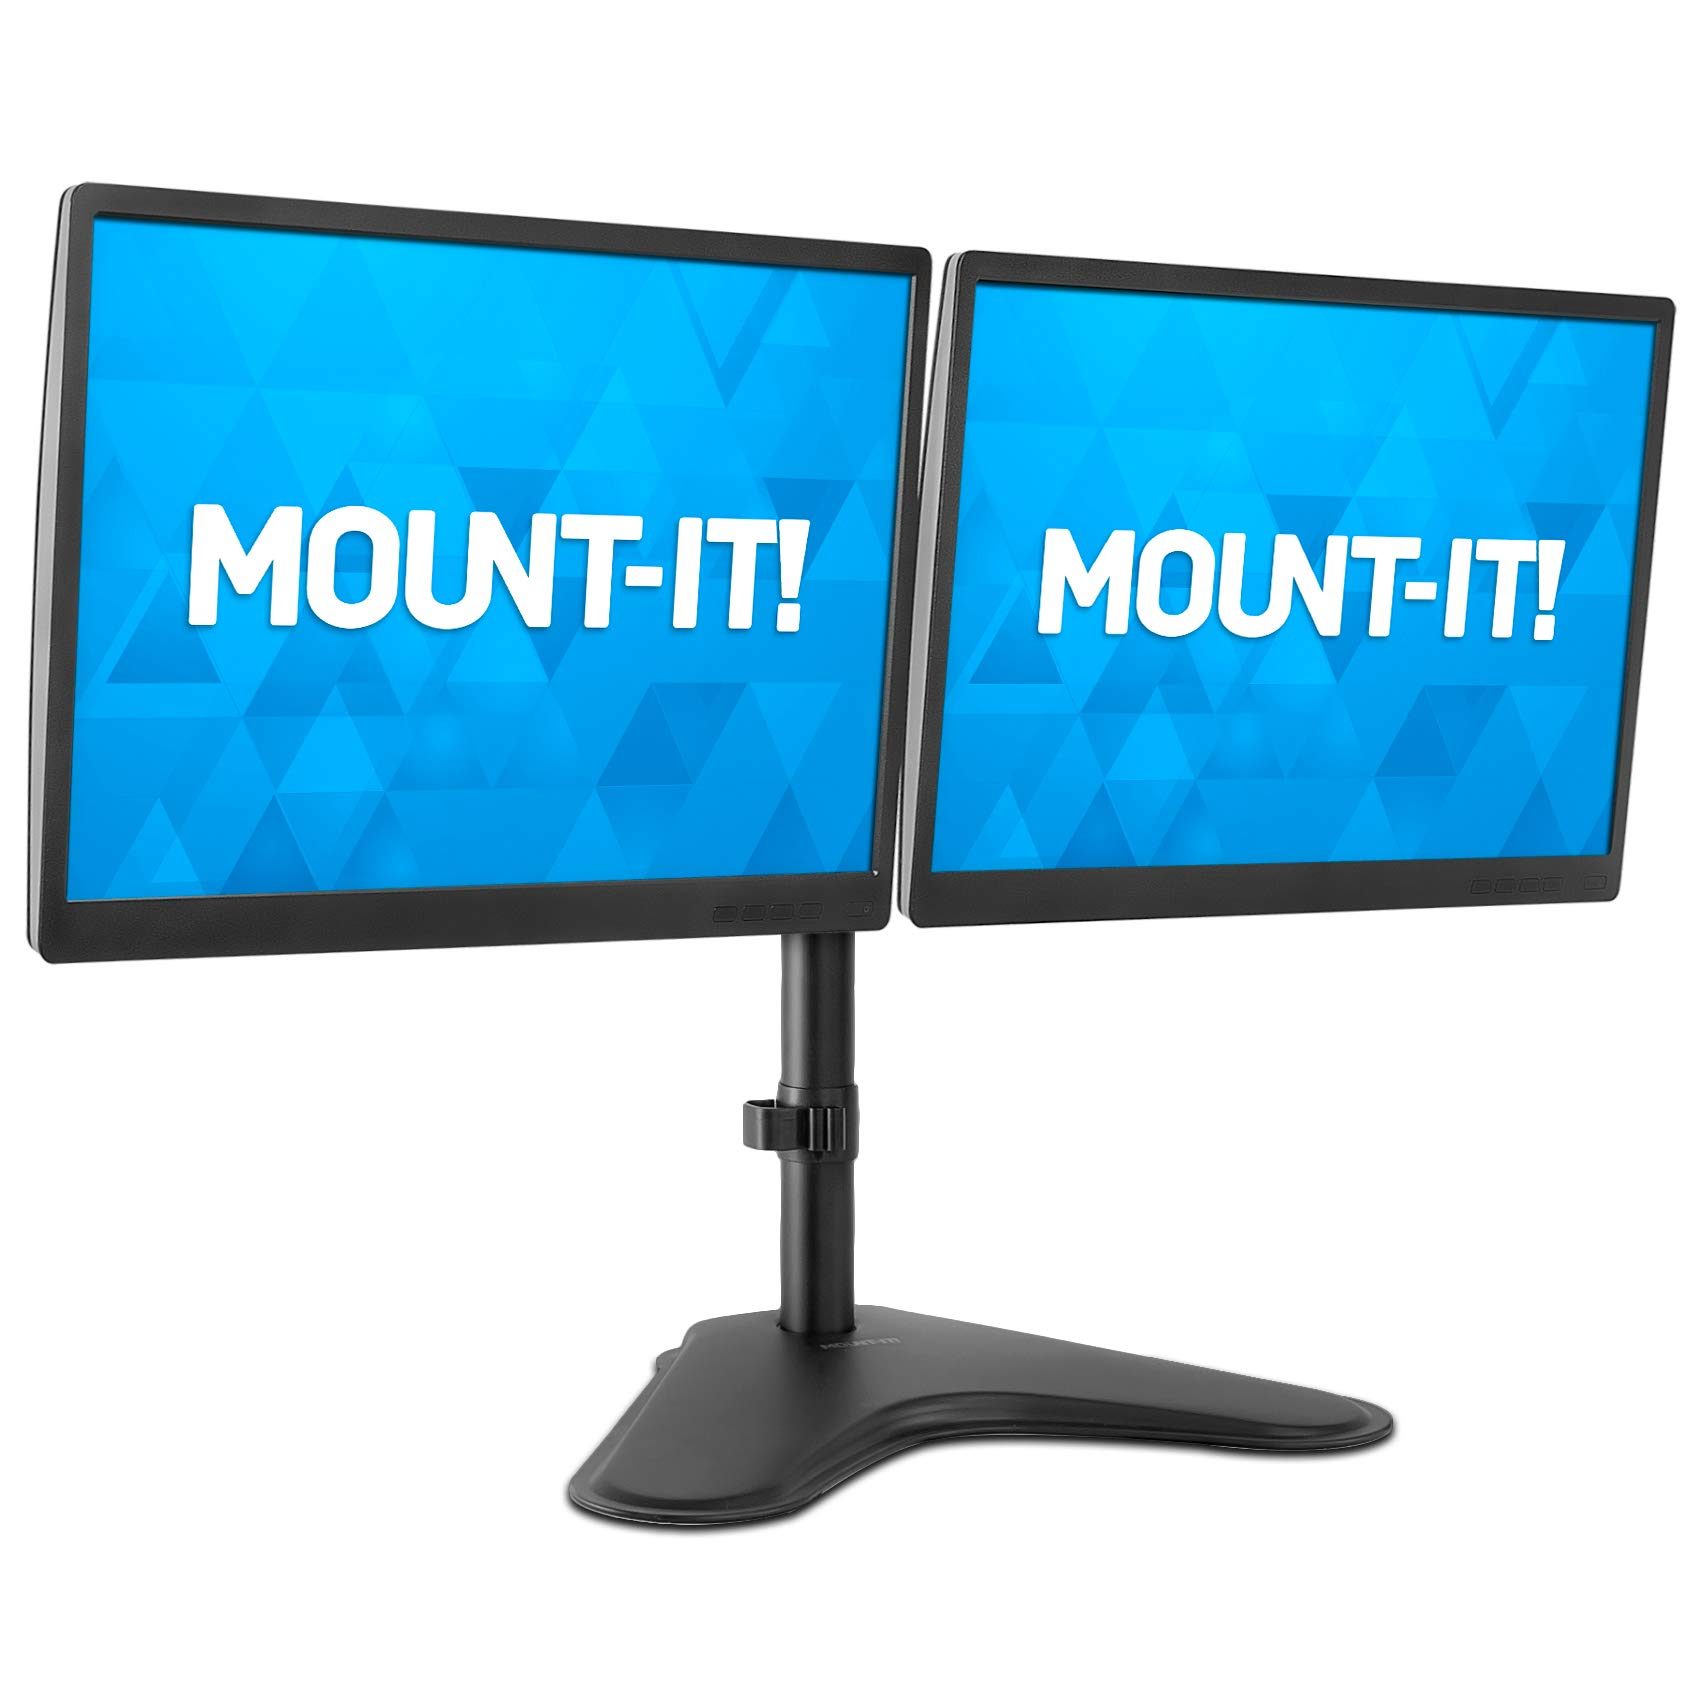 Mount-It! Dual Monitor Stand   Double Monitor Desk Stand Fits Two x 21 22 23 24 27 28 30 32 Inch Computer Screens   Freestanding Base   2 Heavy Duty Full Motion Adjustable Arms   VESA Compatible